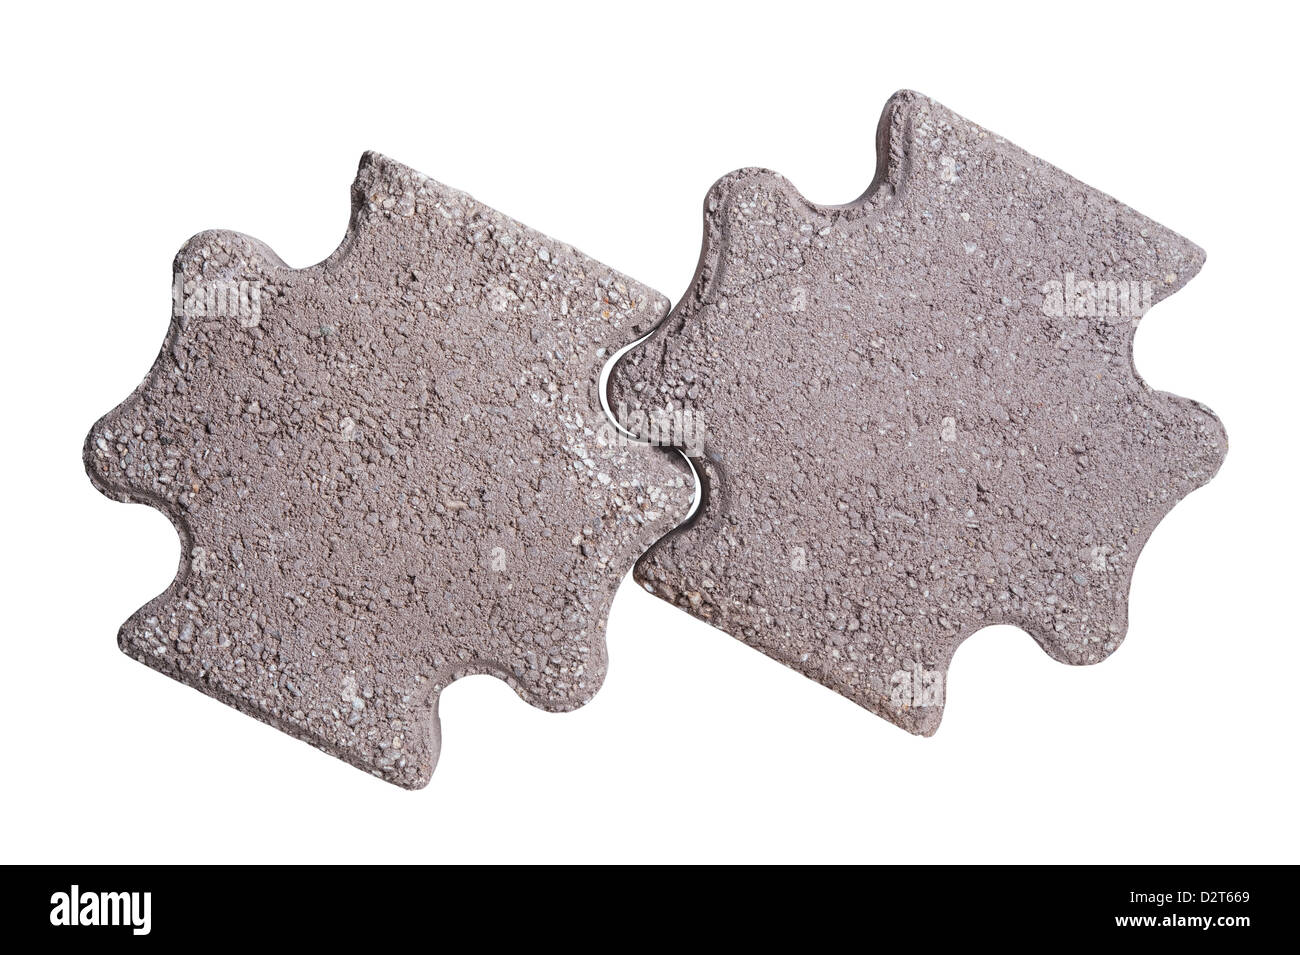 Two paving stones isolated on a white background - Stock Image